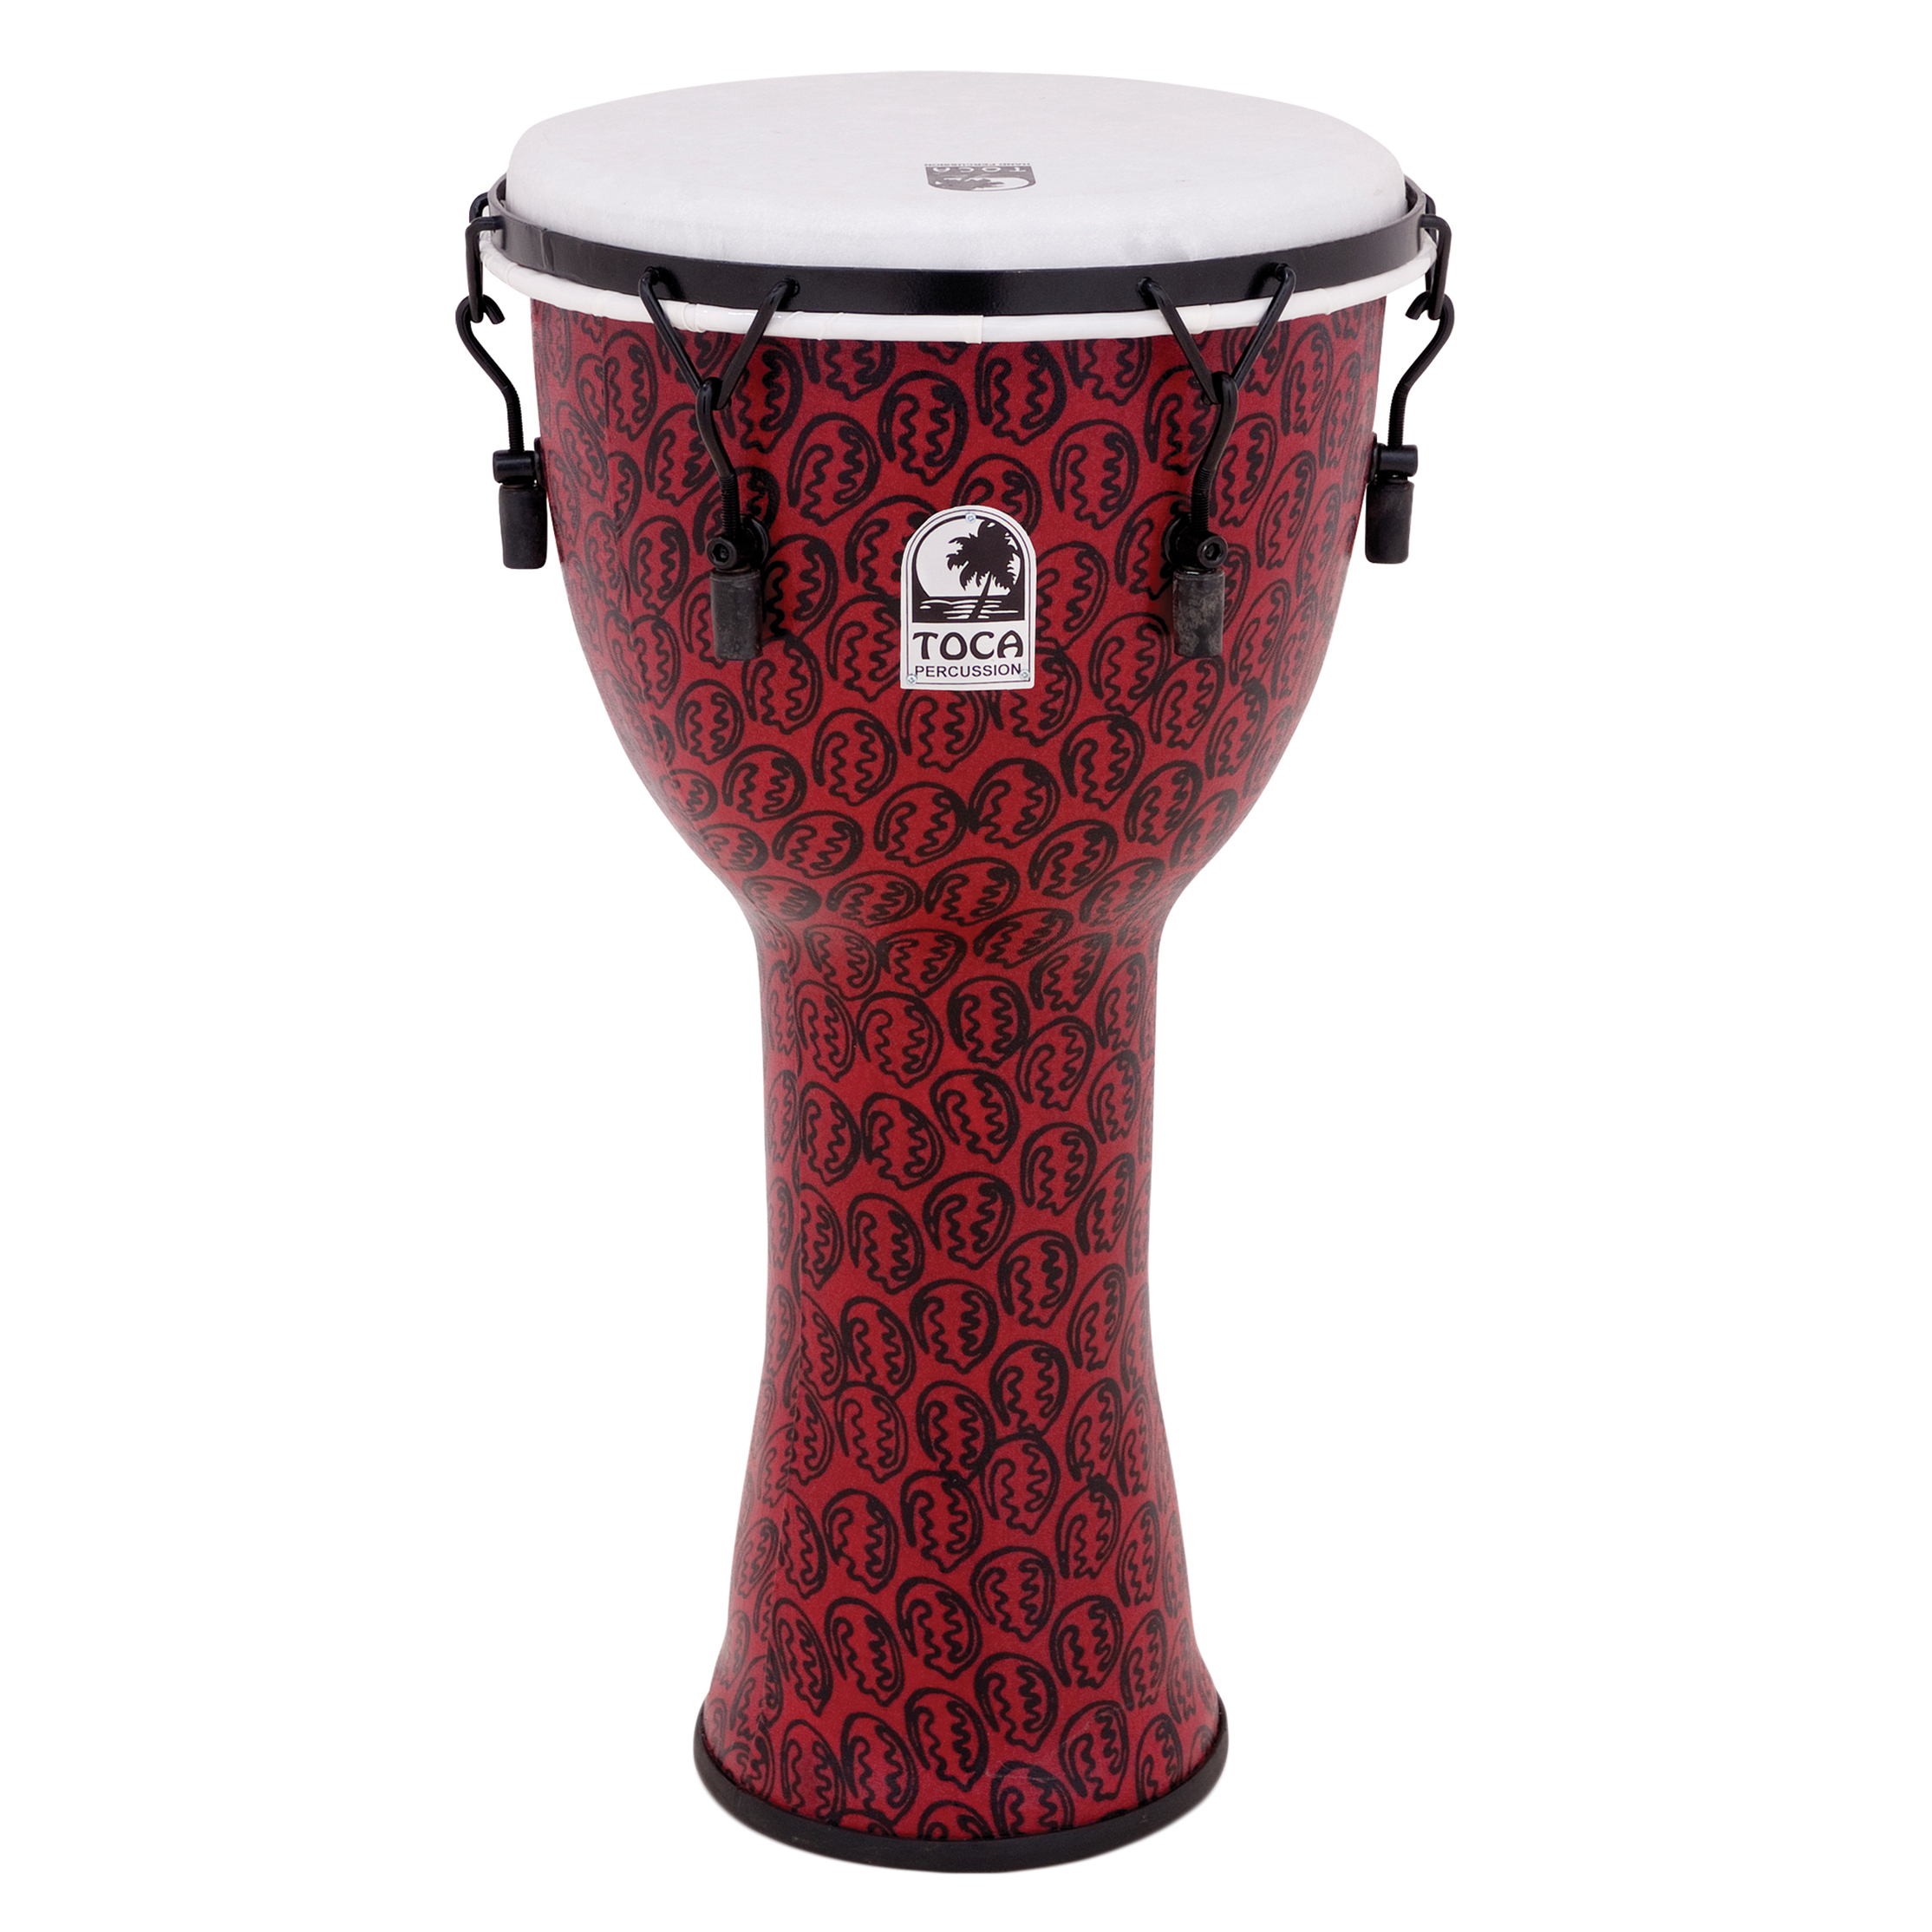 "Toca 12"" Freestyle II Mechanically-Tuned Djembe"